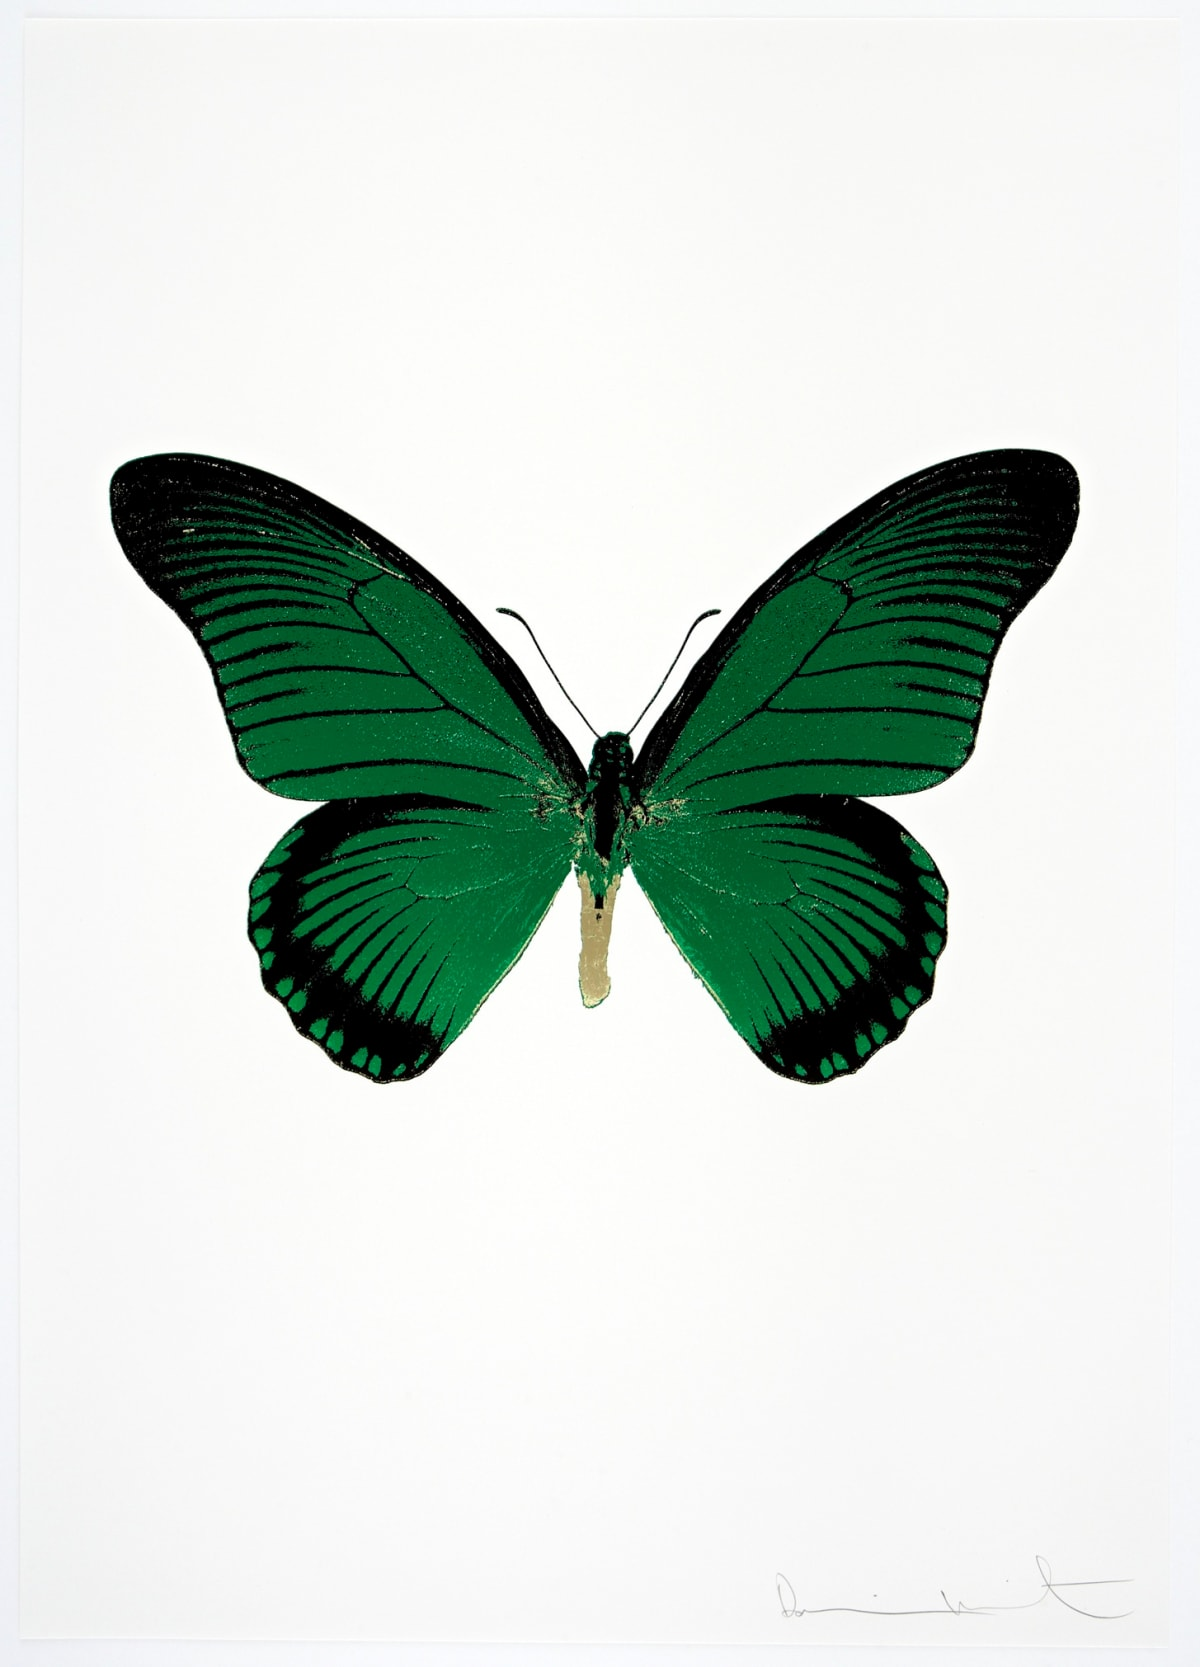 Damien Hirst The Souls IV - Emerald Green/Raven Black/Cool Gold Damien Hirst butterfly foil print for sale Damien Hirst print for sale , 2010 3 colour foil block on 300gsm Arches 88 archival paper. Signed and numbered. Published by Paul Stolper and Other Criteria 72 x 51cm OC8049 / 1418-72 Edition of 15